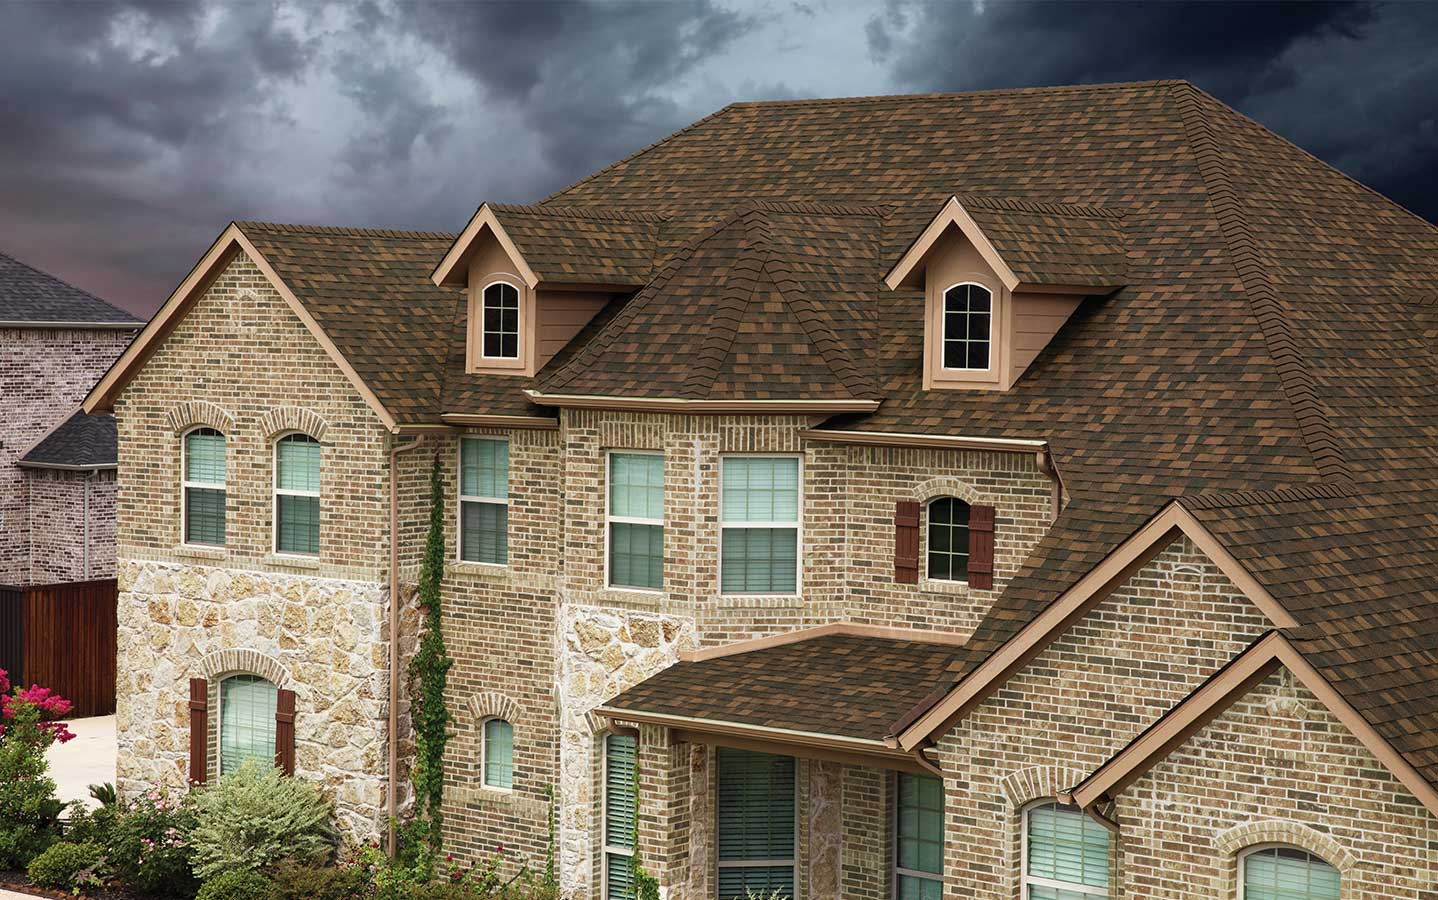 Houston Roofing Roofer In Houston Roof Replacement Rose Roofing